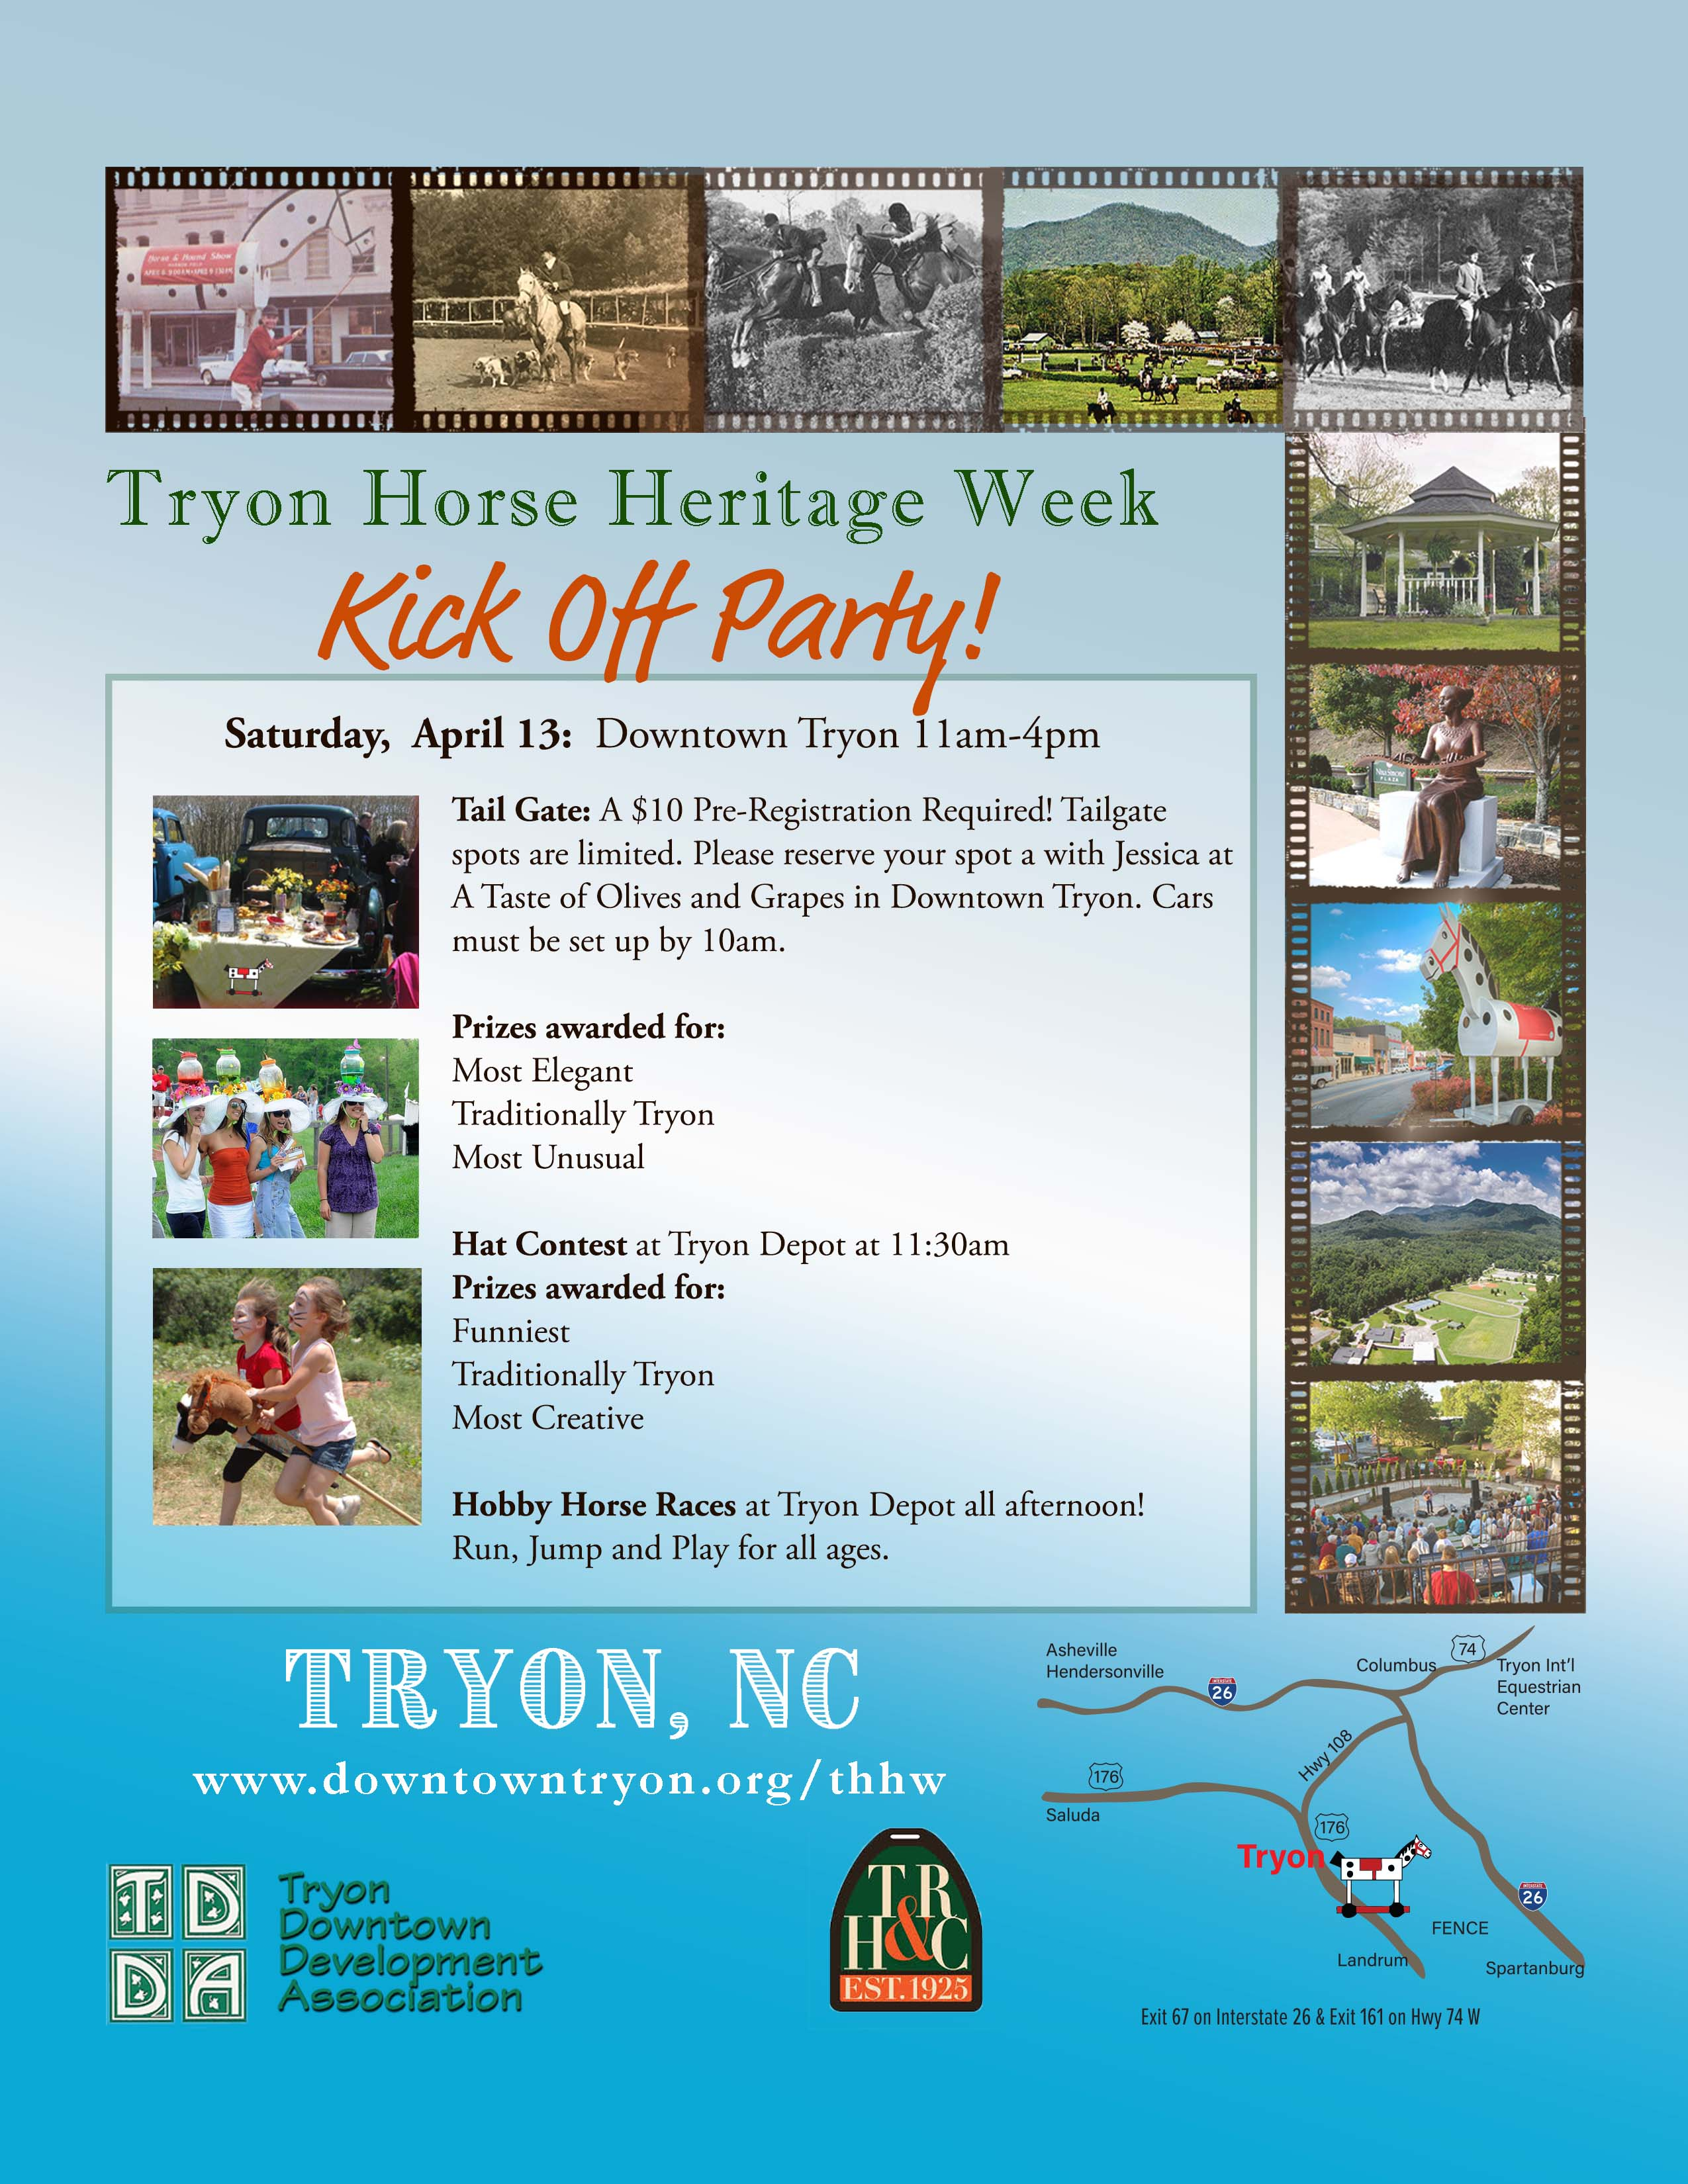 THHW kickoff party flyer tailgate hats